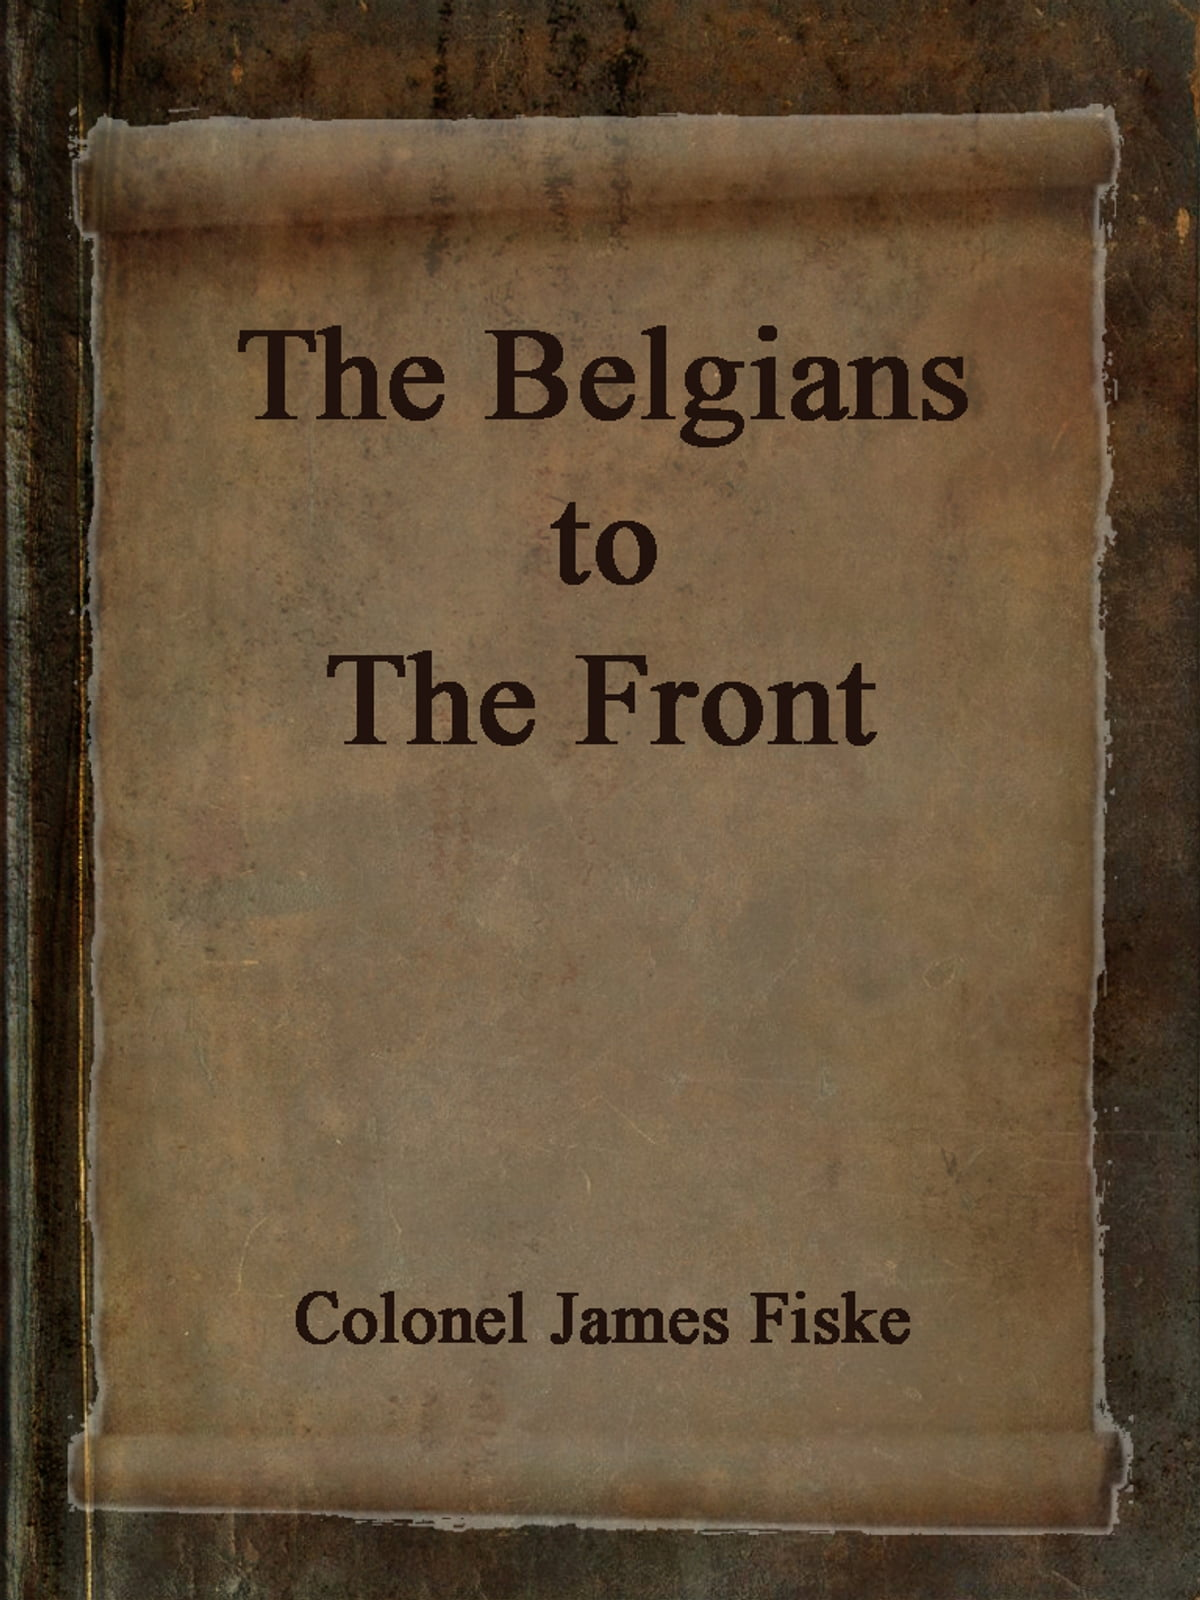 The Belgians to the Front